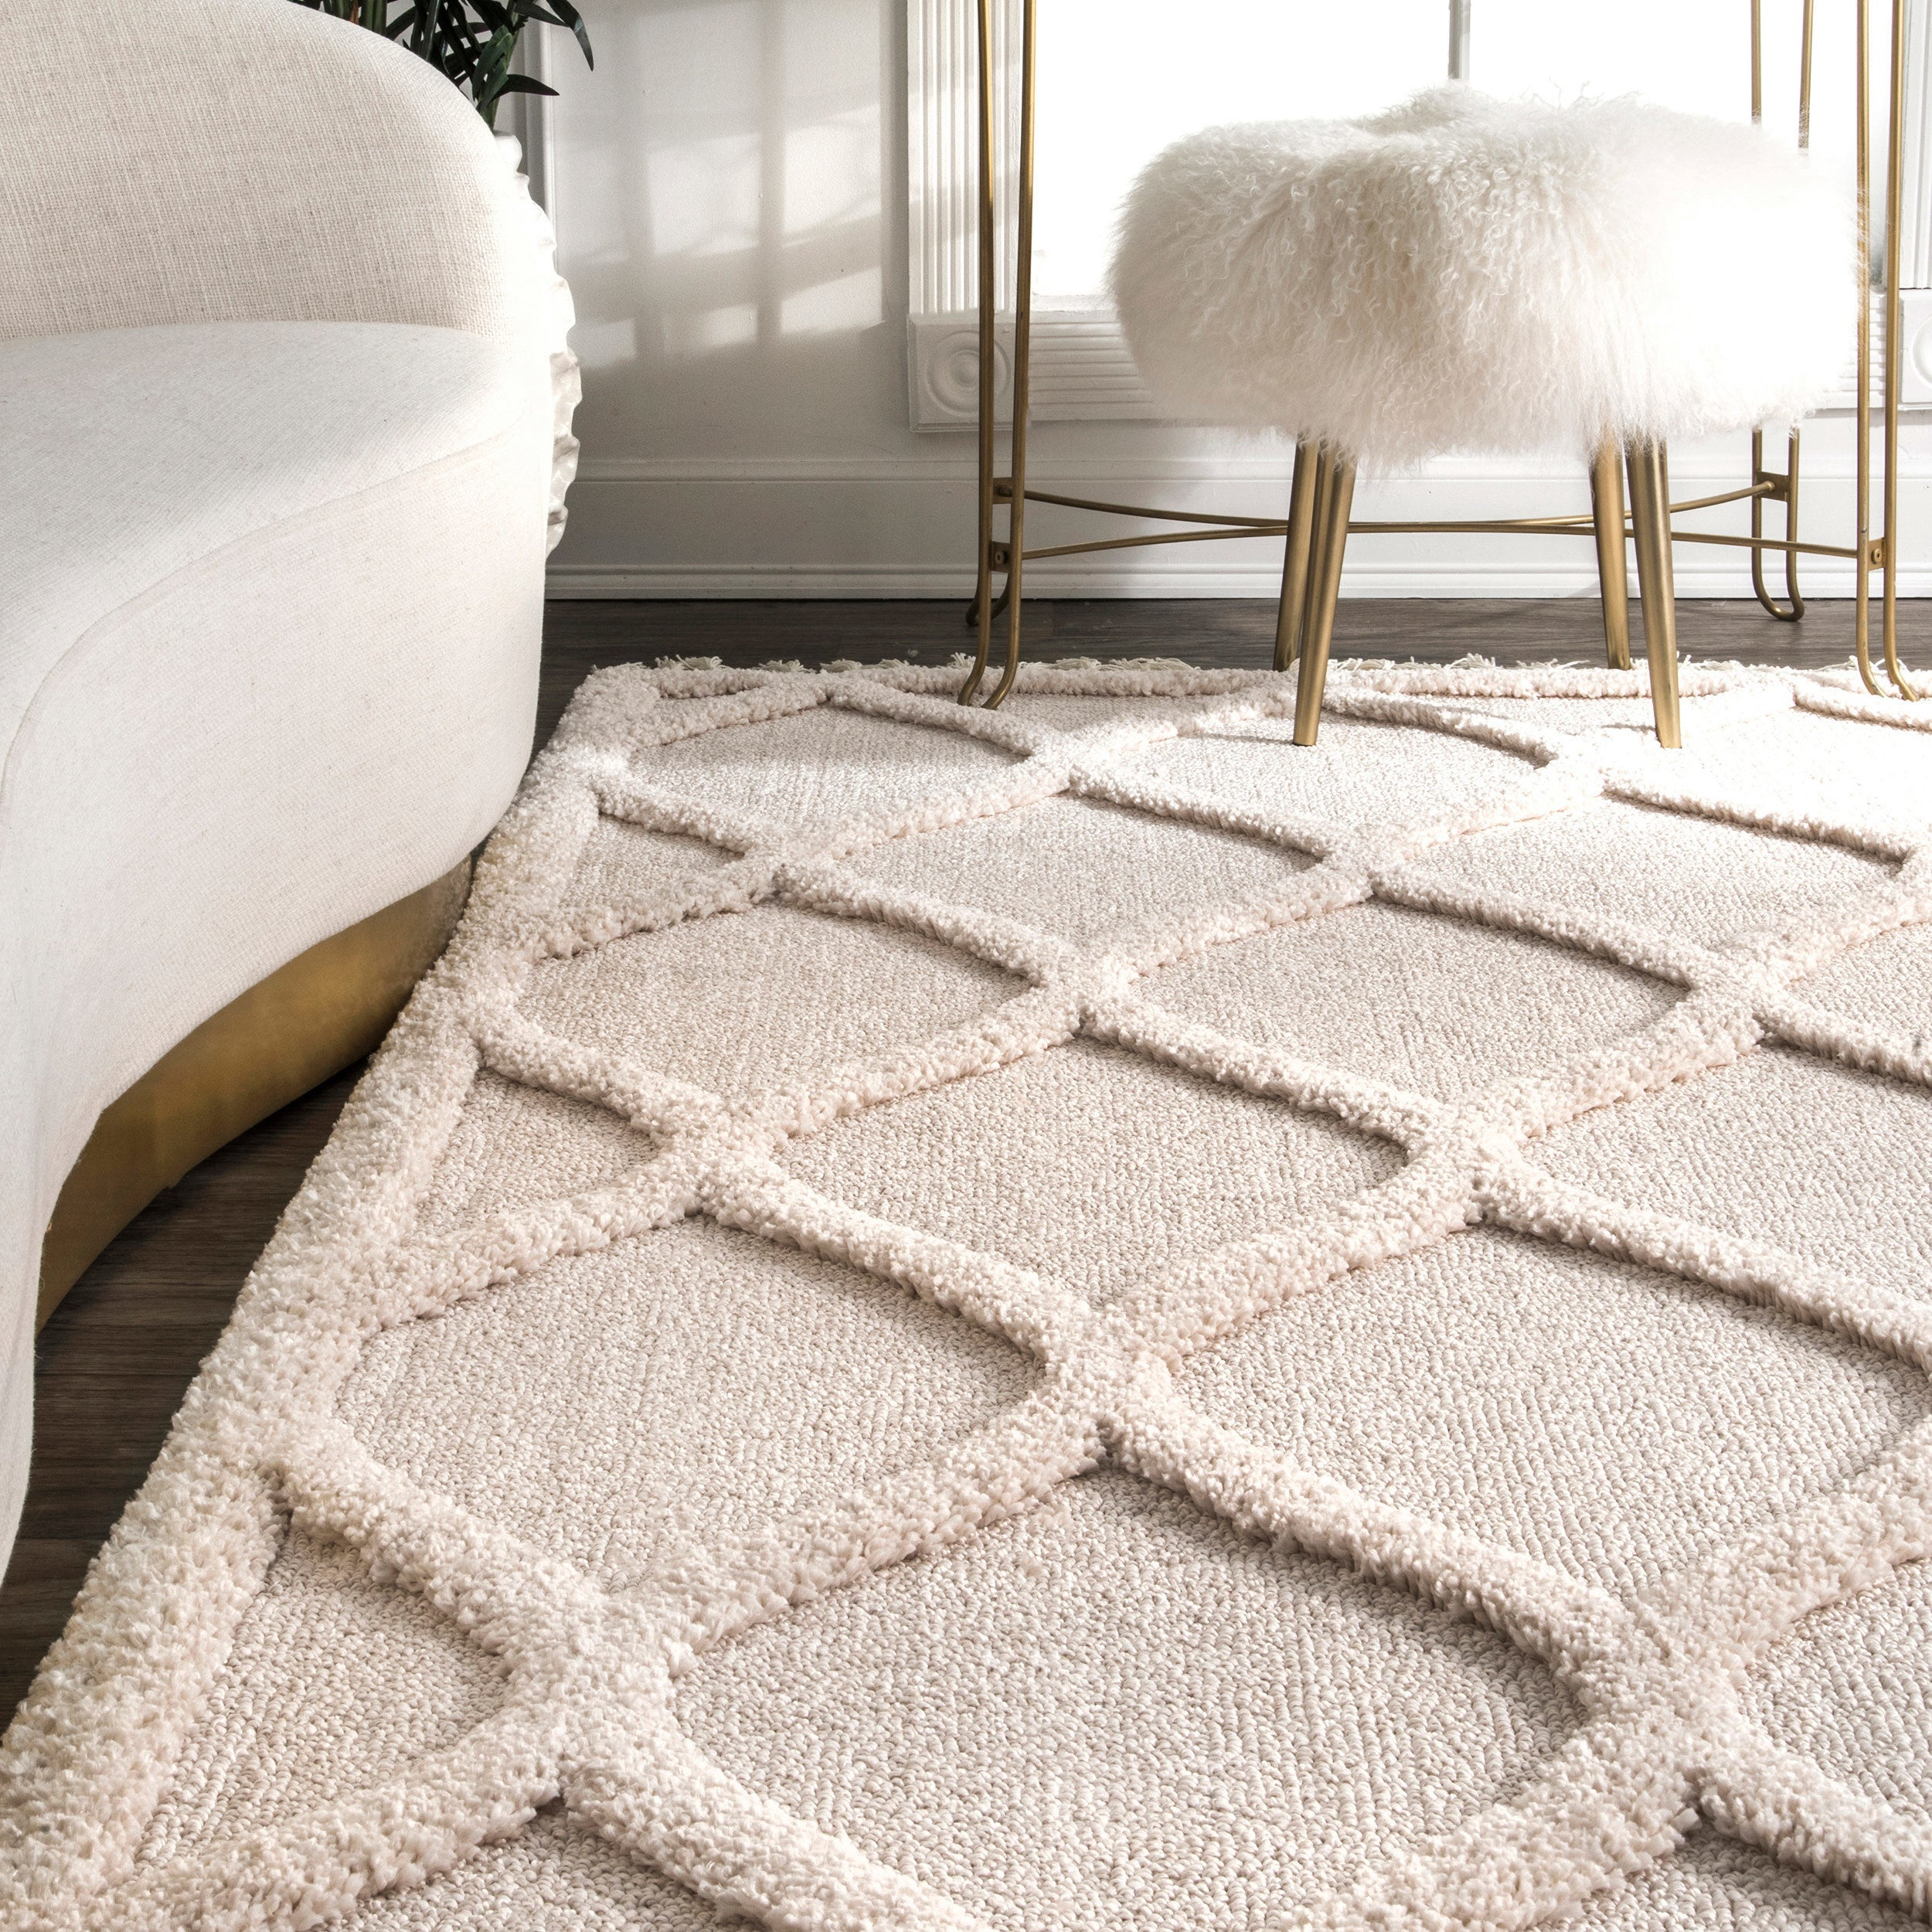 Nuloom Plush High Low Trellis Kids Tel Gy Ivory Area Rug 7 10 X On Free Shipping Today 20551583